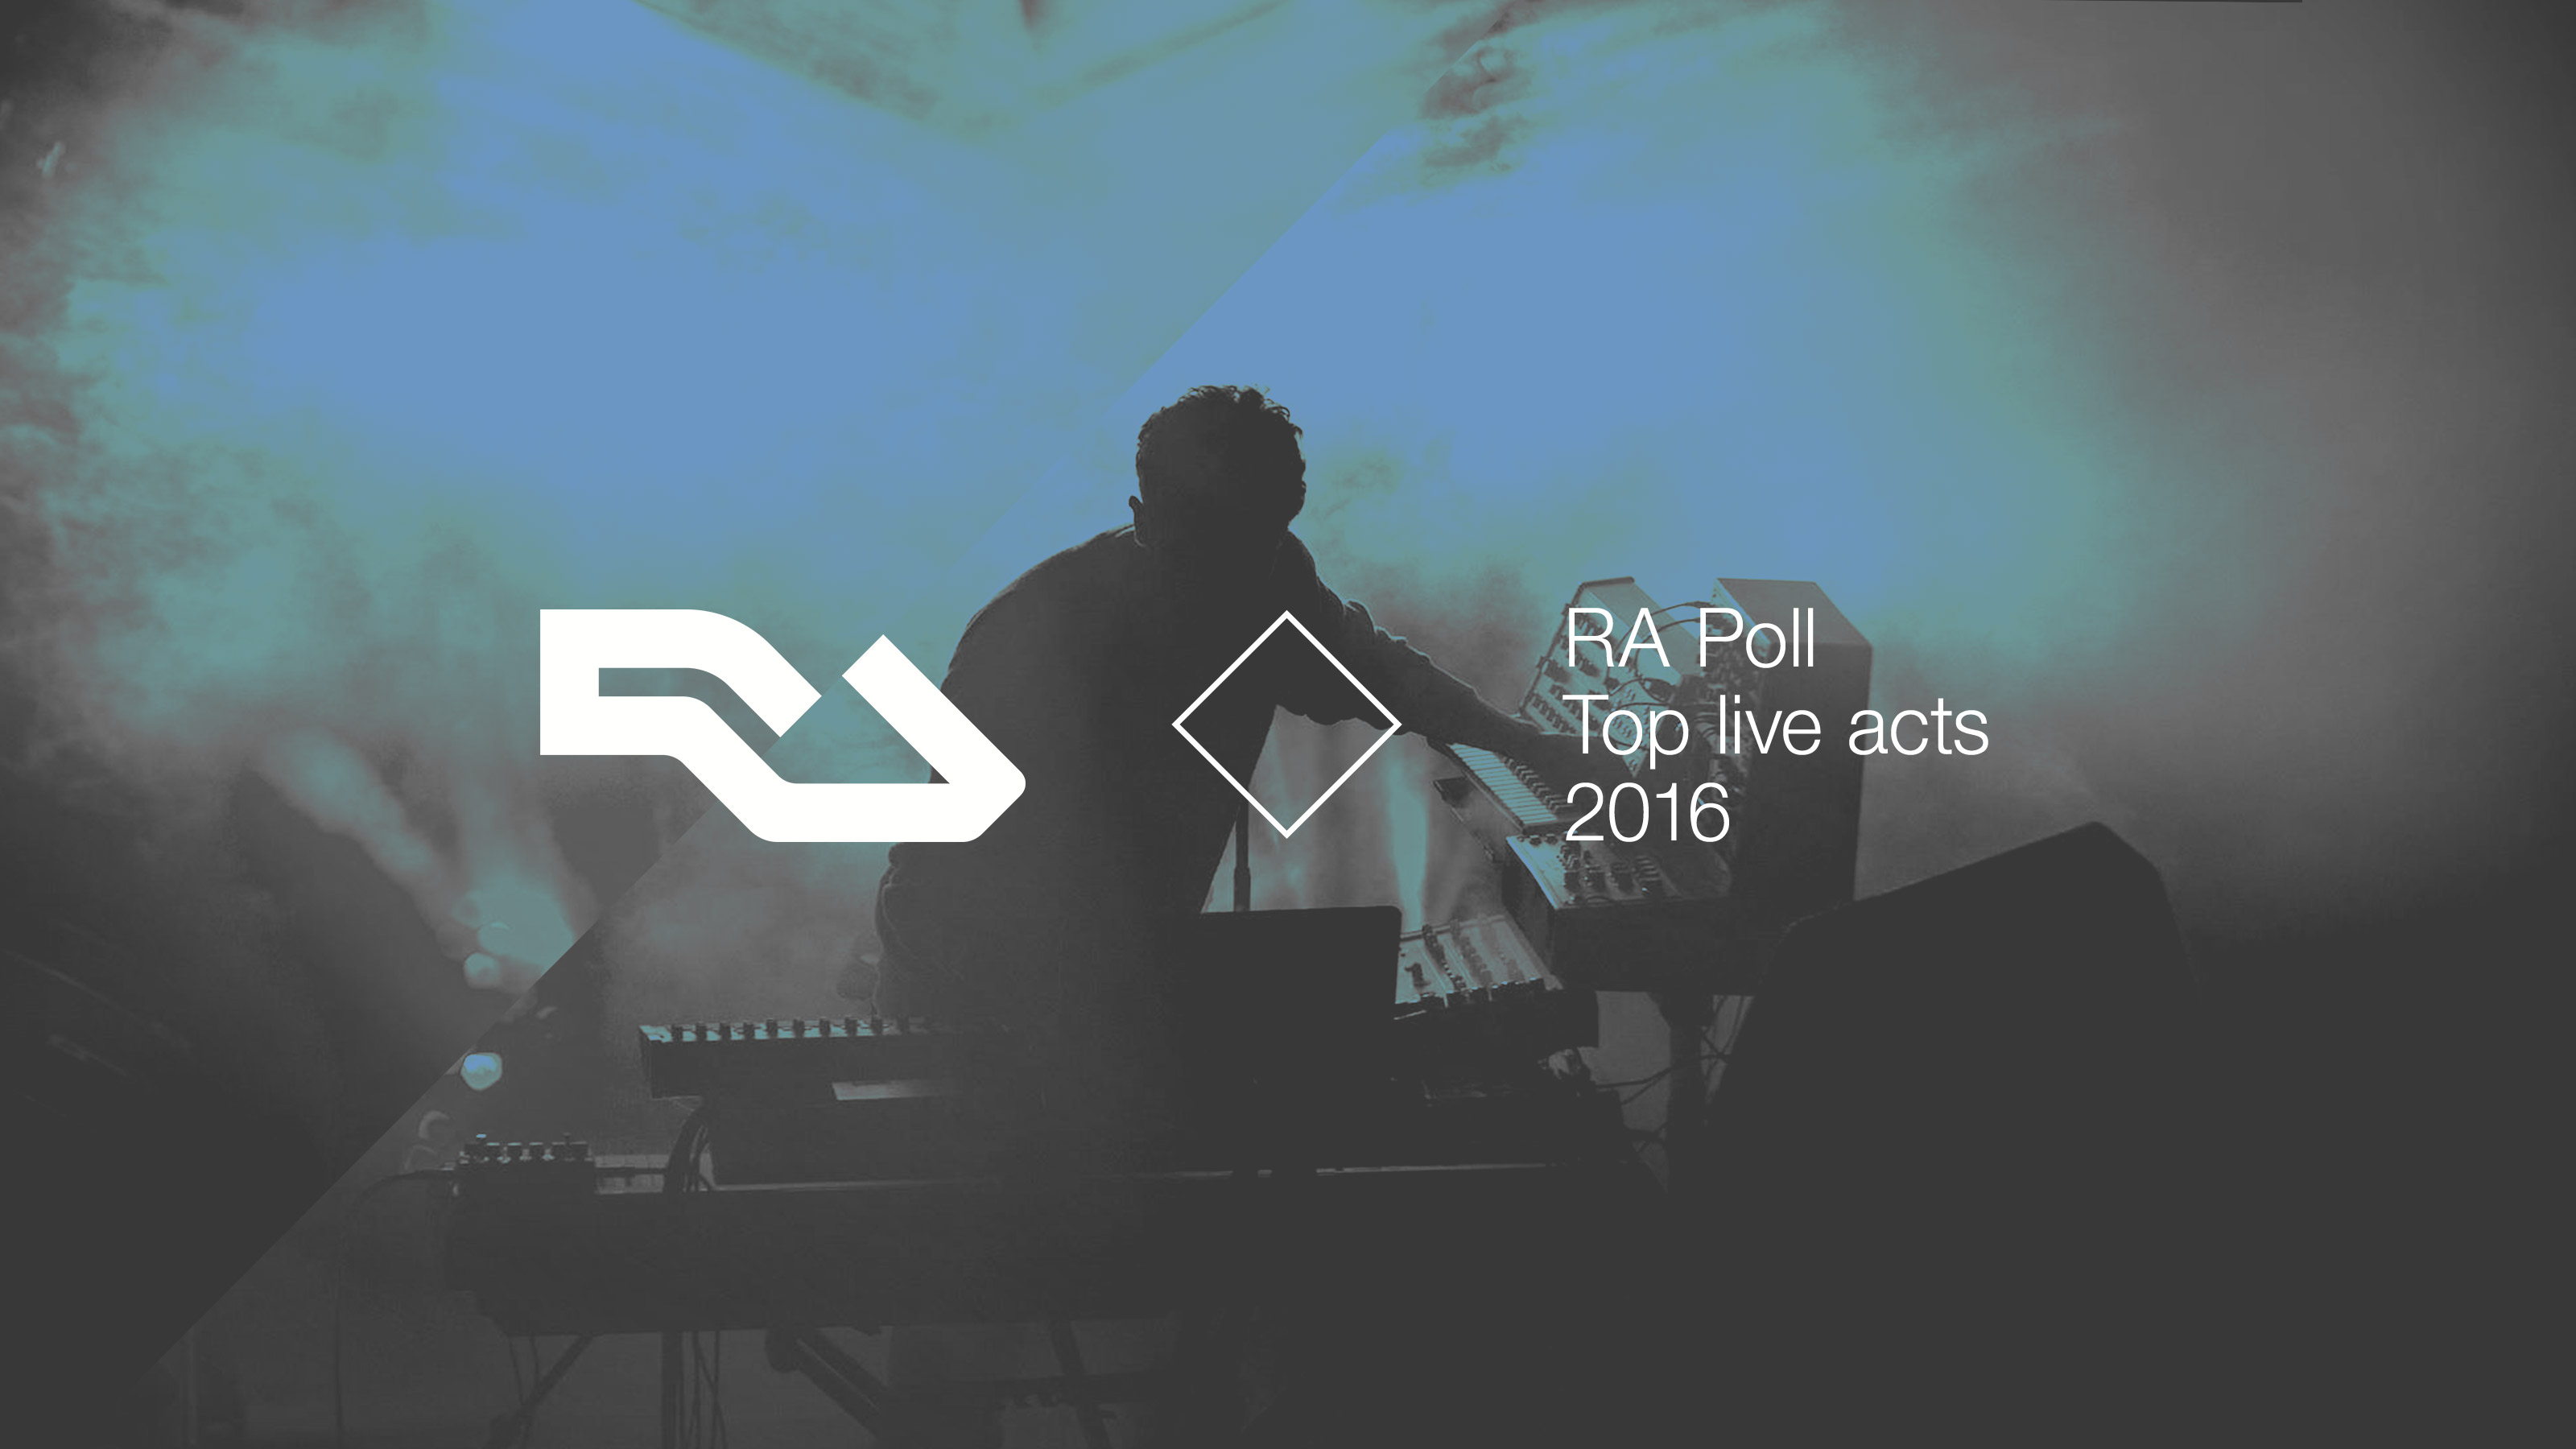 RA Poll: Top 40 live acts of 2016